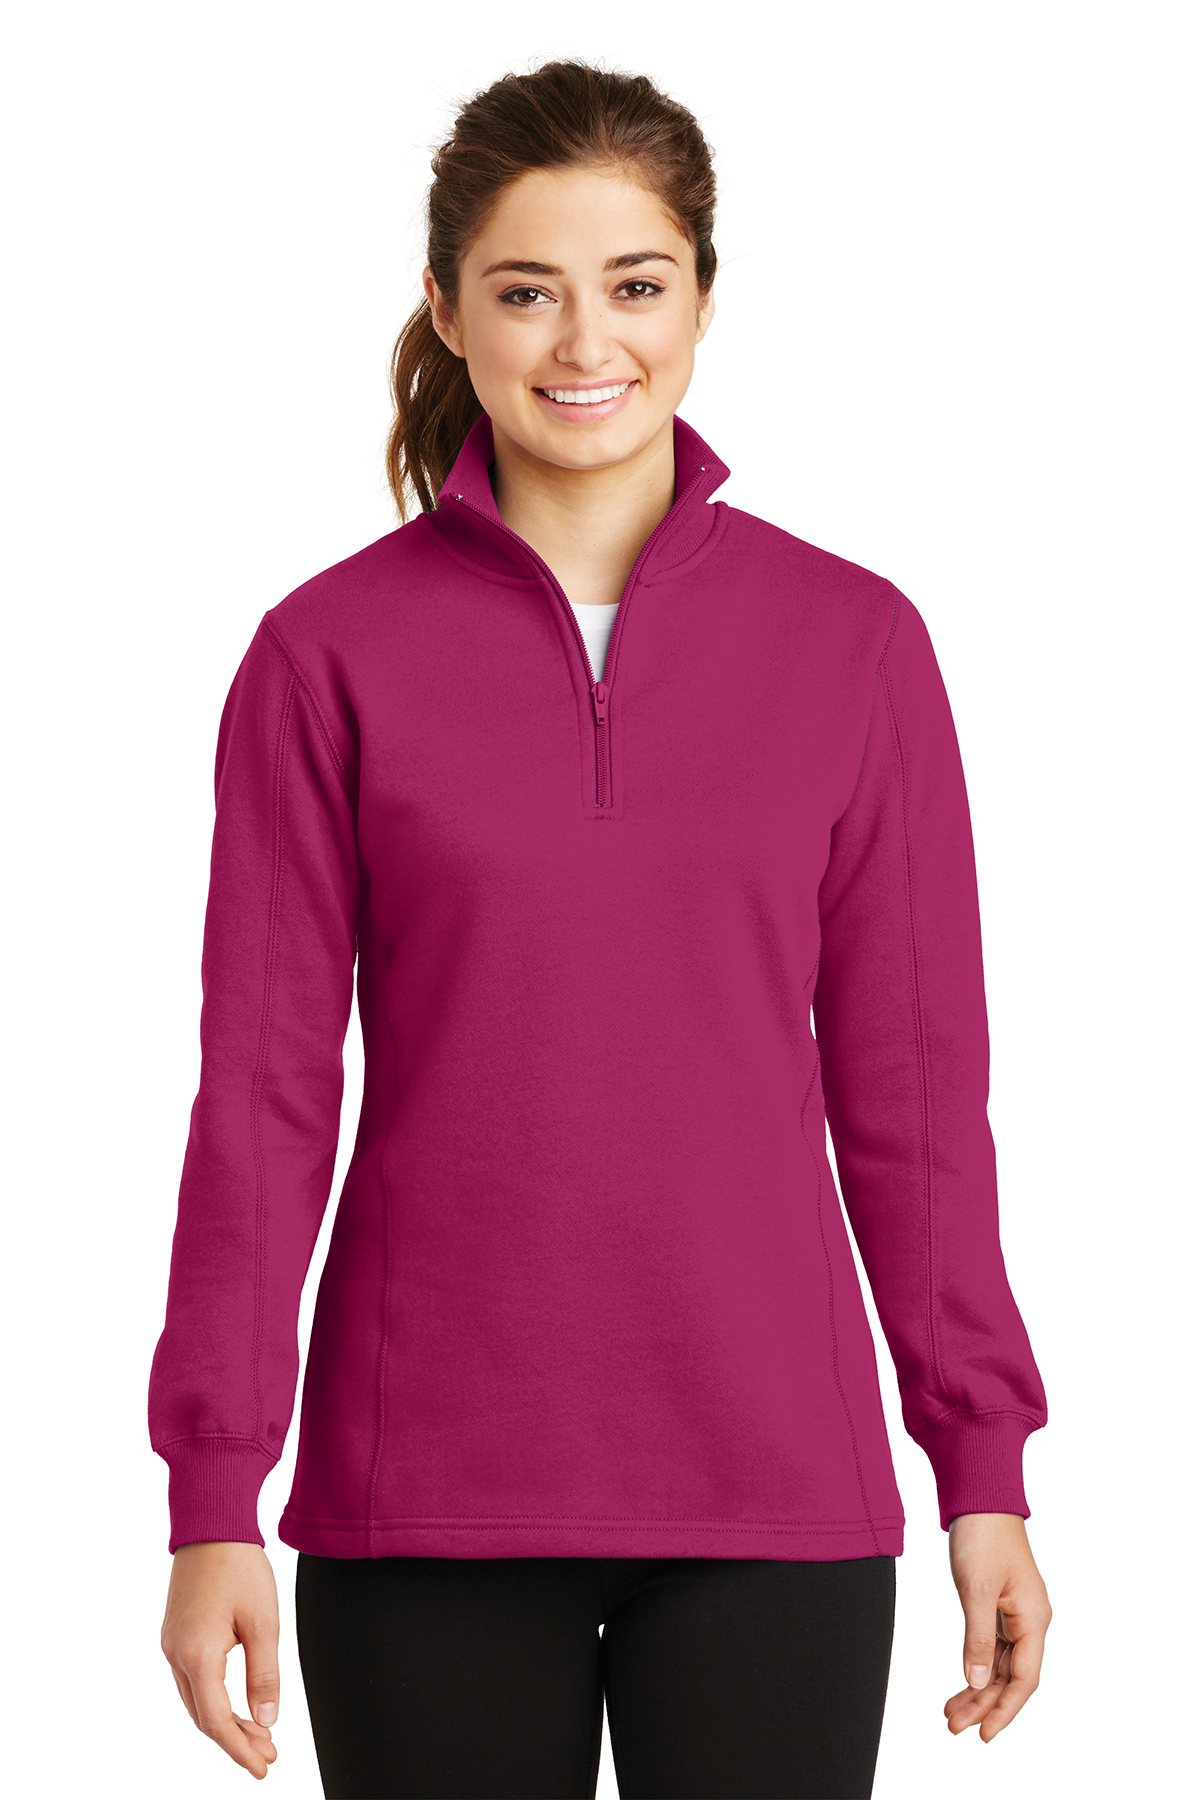 Sport-Tek® LST253 Ladies 1/4-Zip Sweatshirt